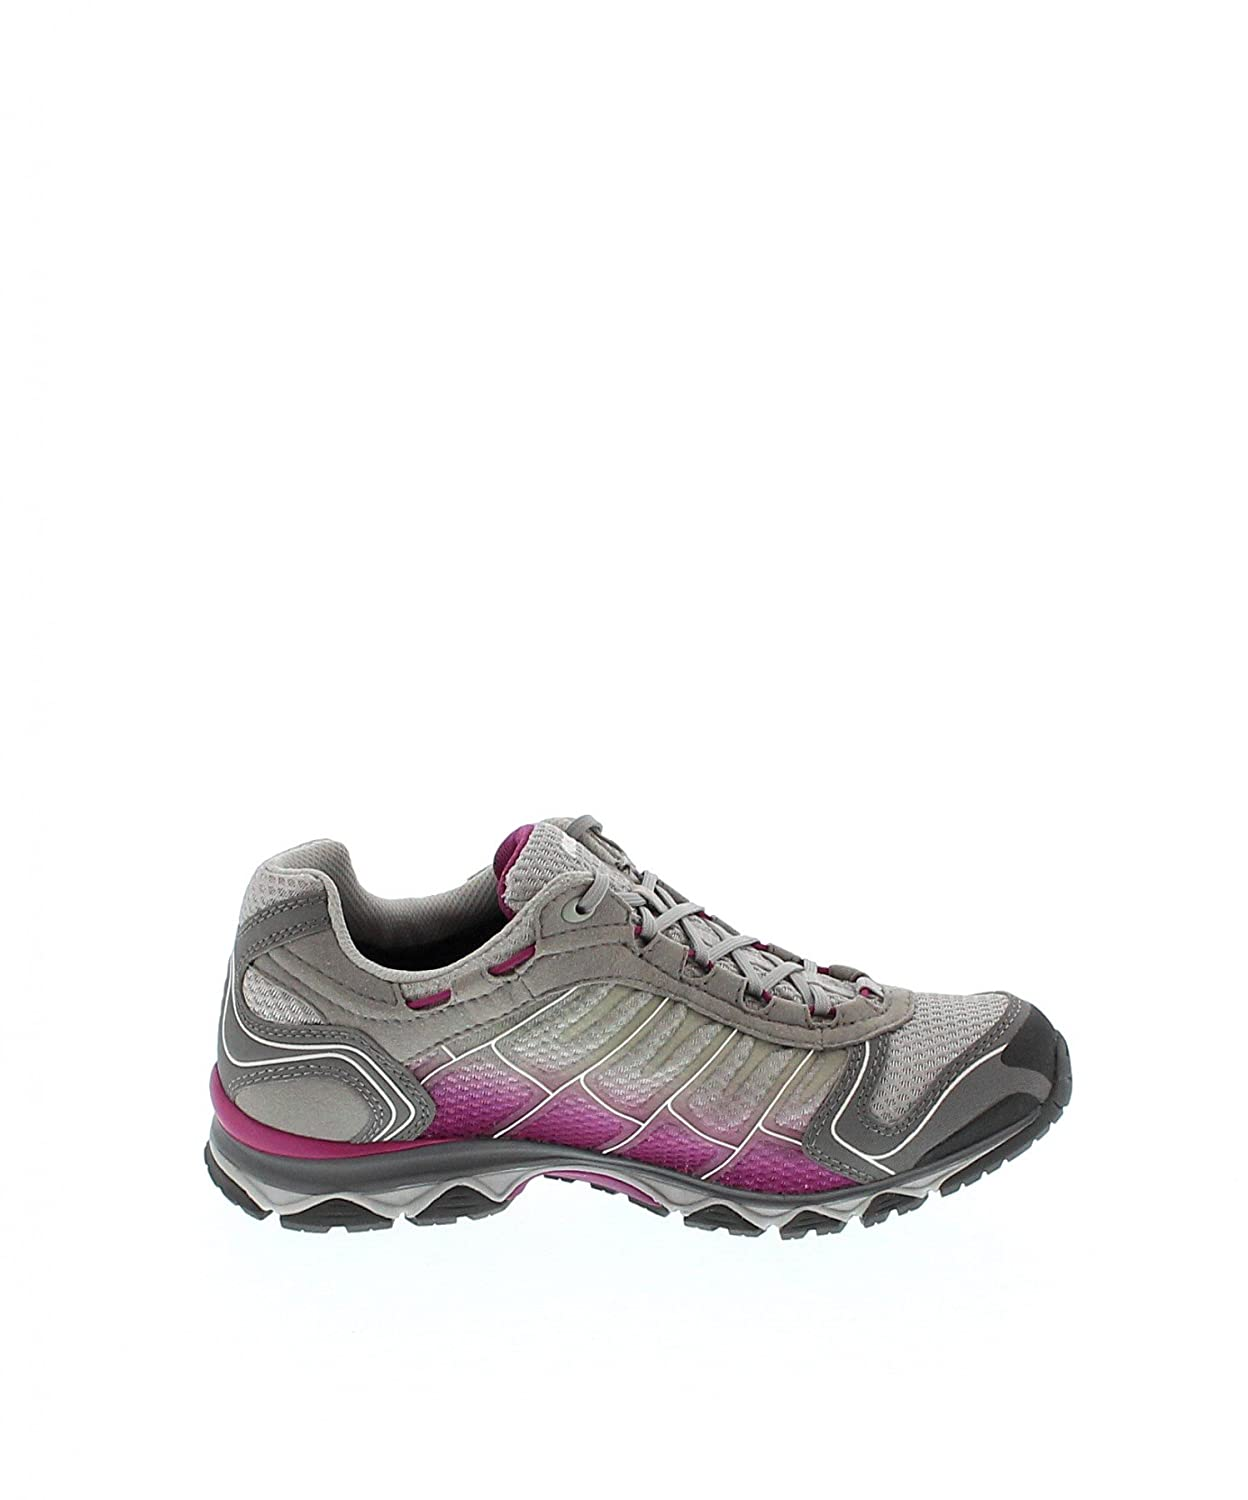 Meindl 3981-92 X-SO X-SO 3981-92 30 Lady GTX Viola/Schwarz/ Damen Wanderstiefel Grau/Travel/ Hiking 514d8e